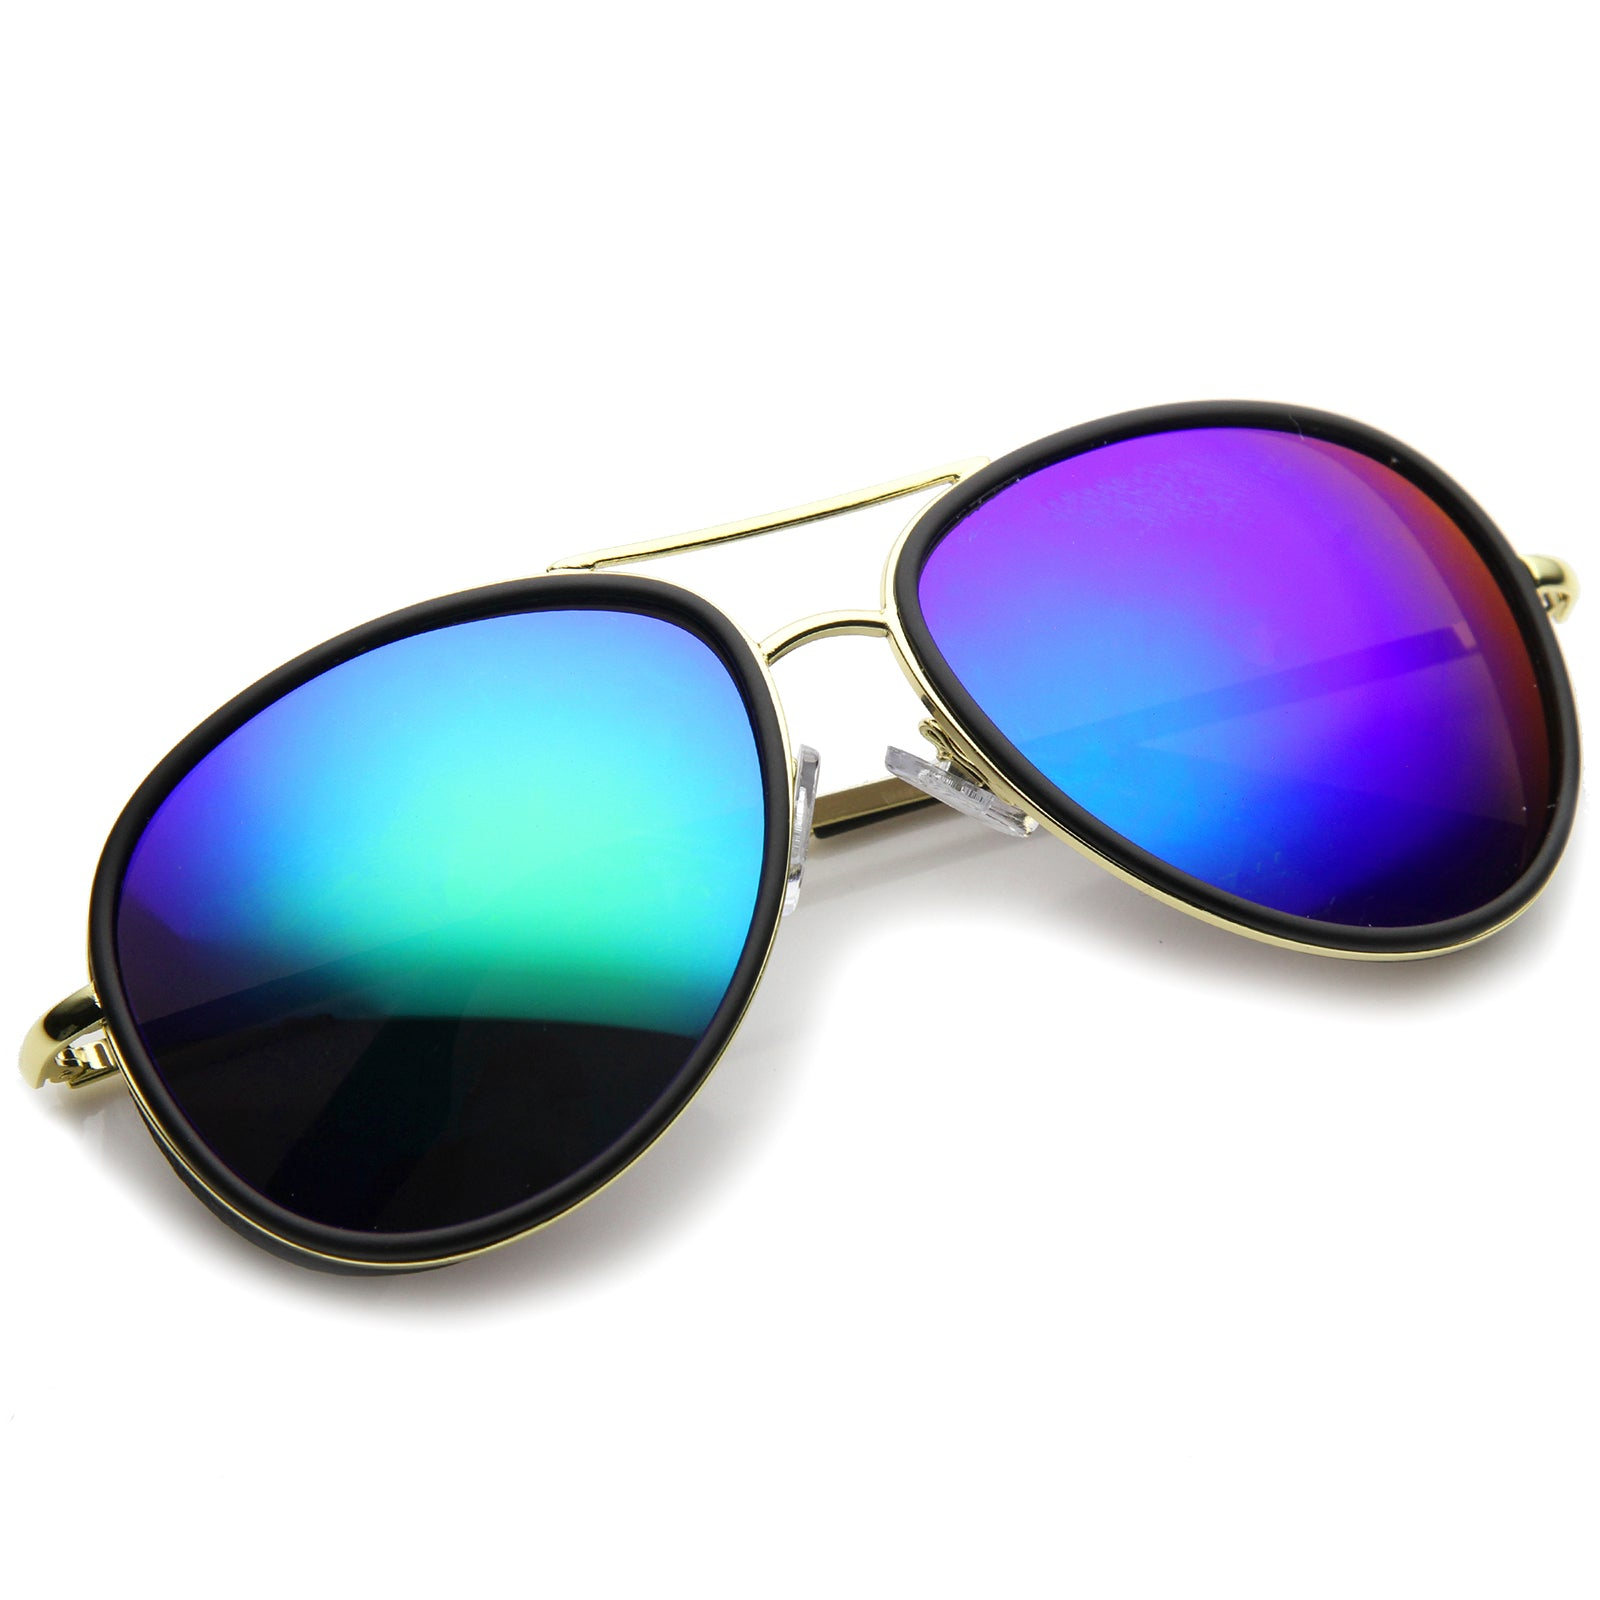 Mens Aviator Sunglasses With UV400 Protected Mirrored Lens - sunglass.la - 8